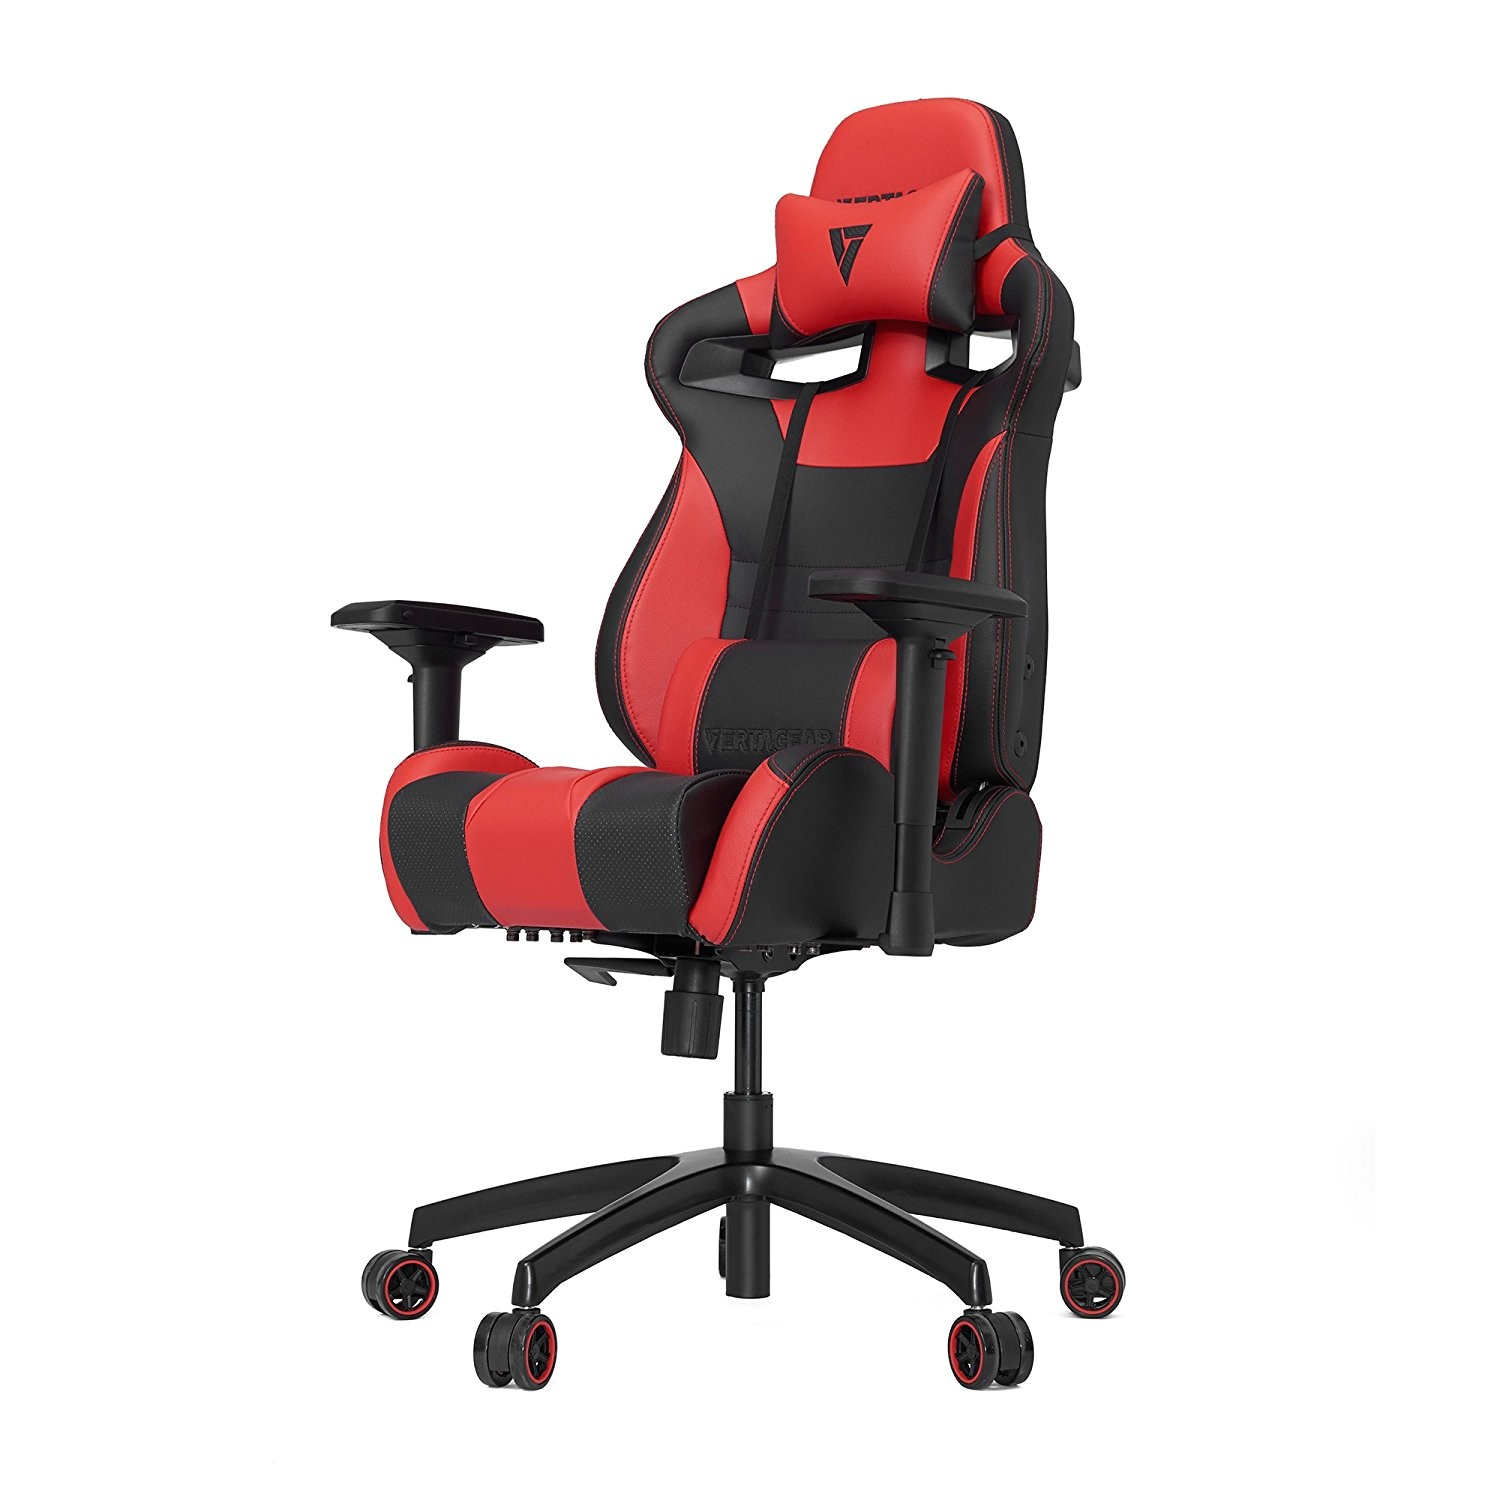 youtube stars twitch streamers and esports athletes all seem to be rocking the racing style gaming chairs these days while there s a crazy amount of